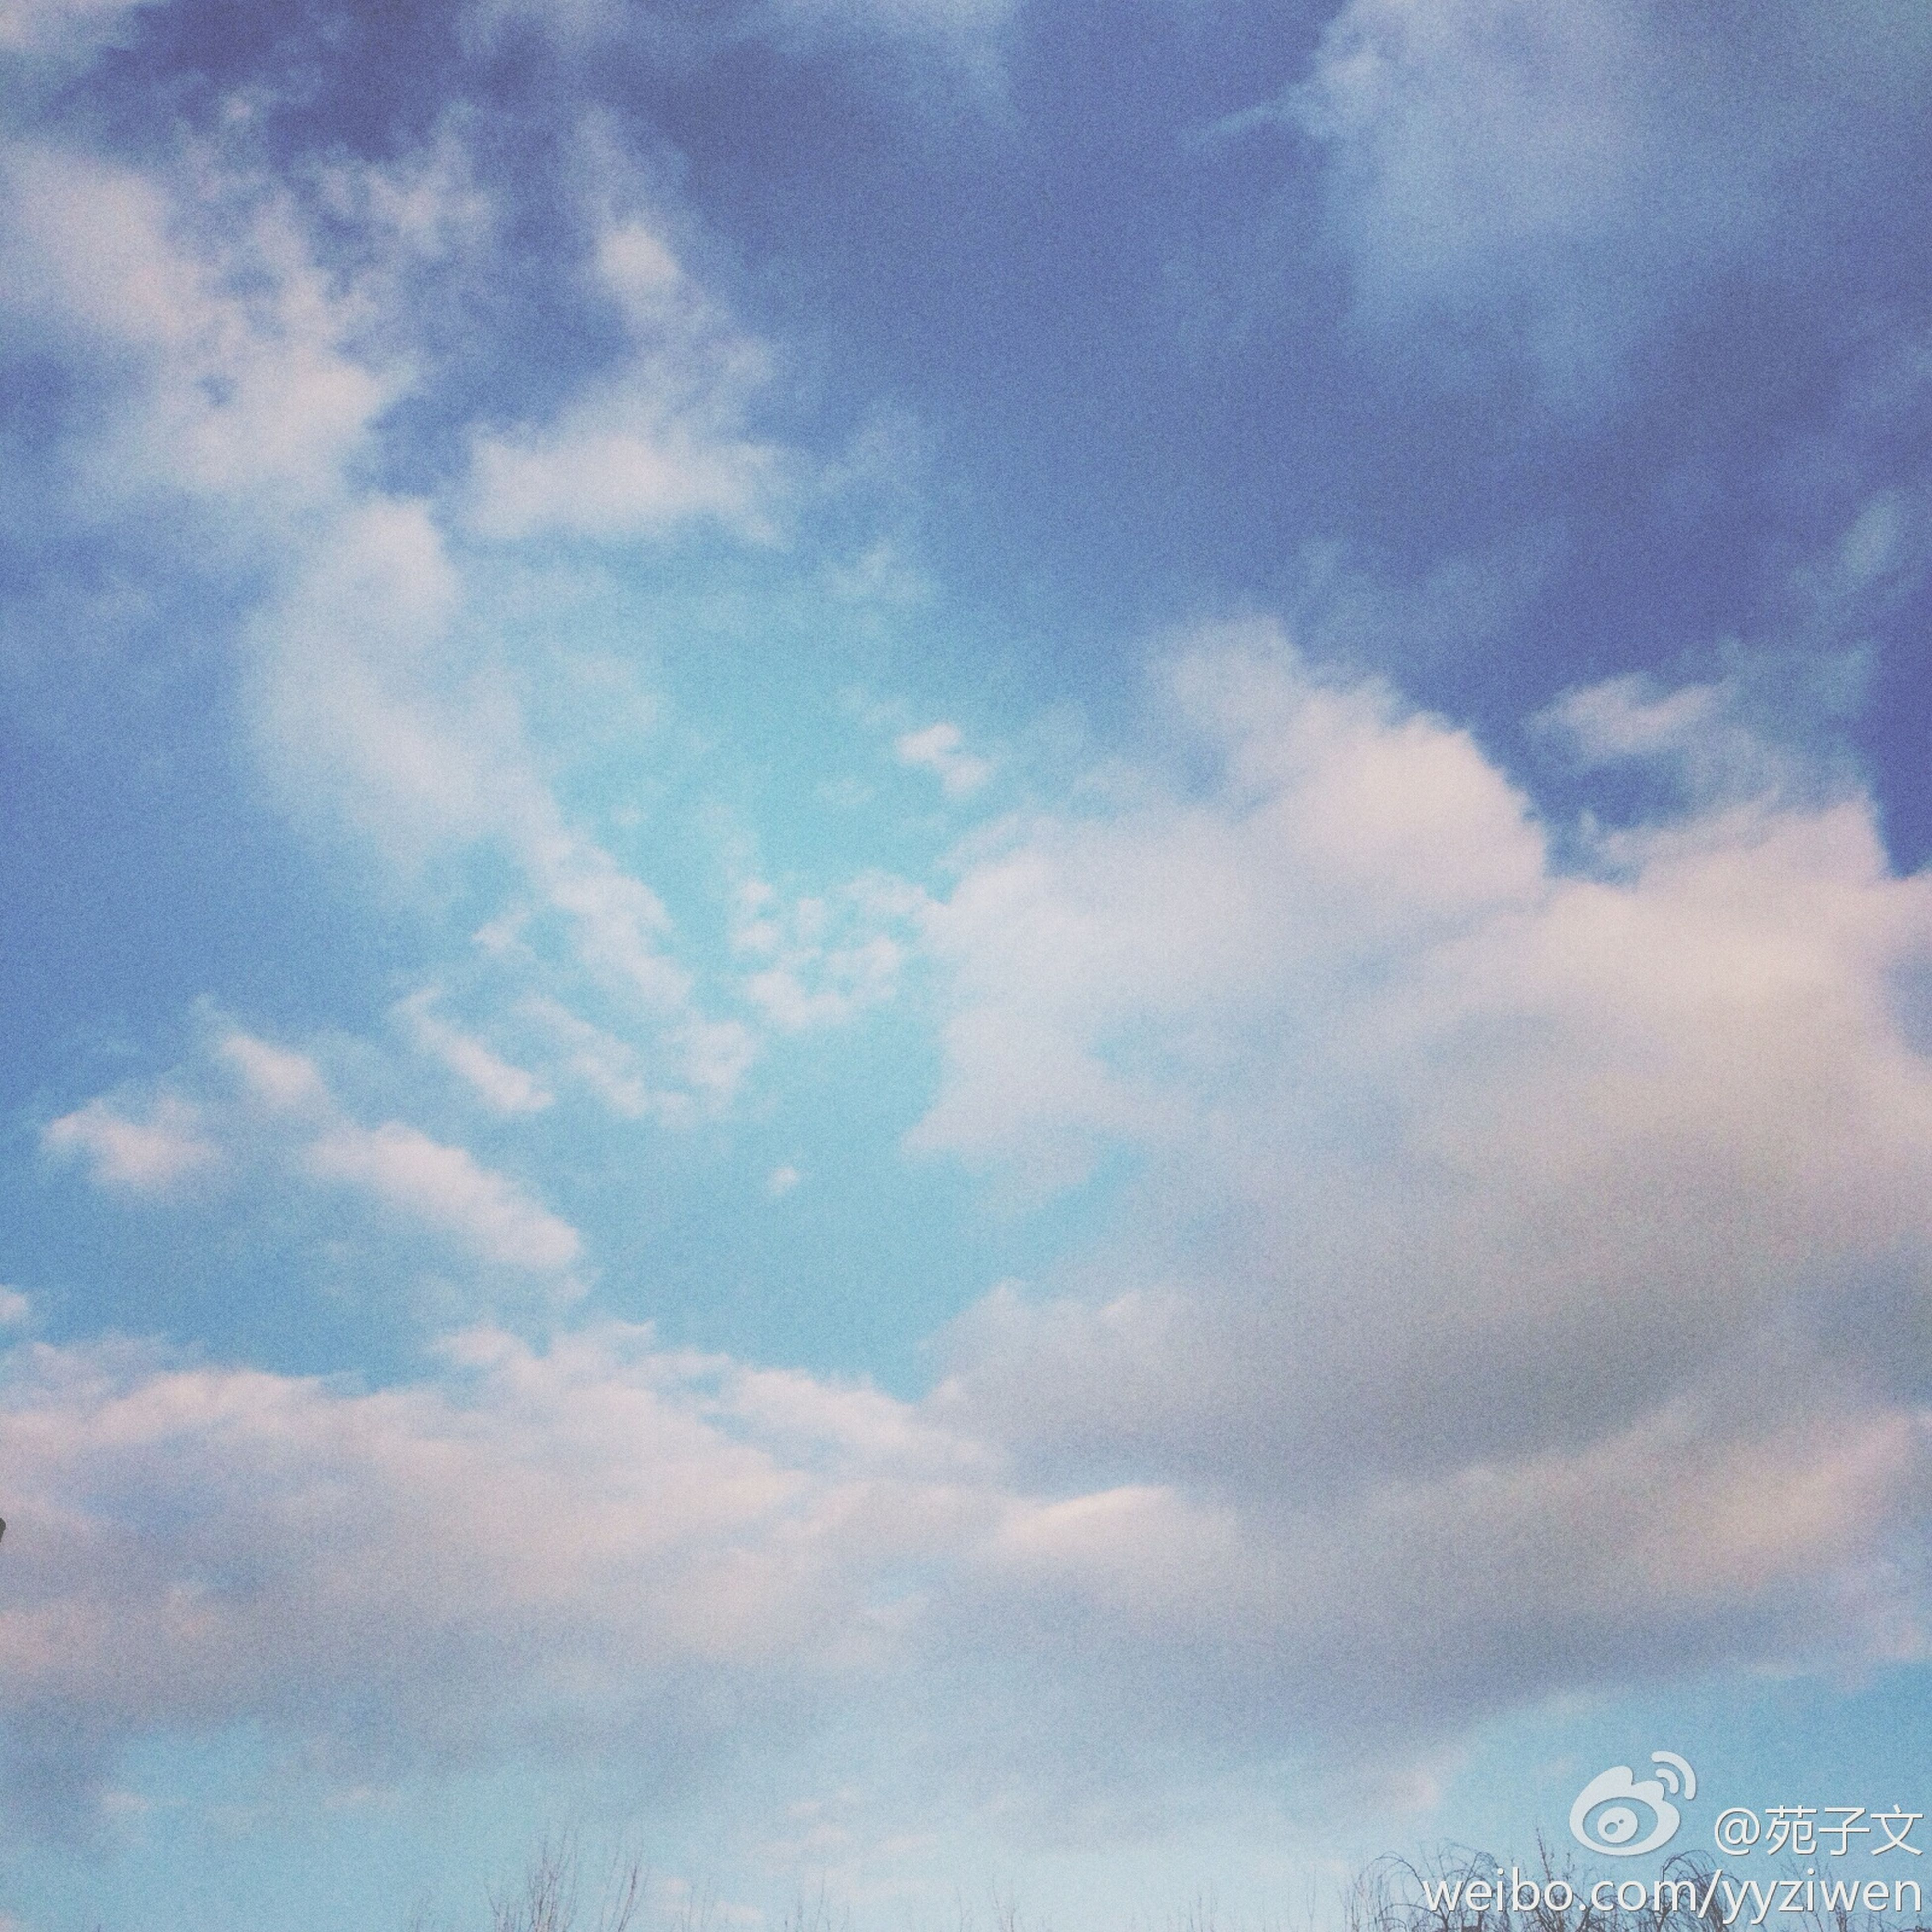 low angle view, sky, cloud - sky, cloudy, blue, cloud, nature, beauty in nature, outdoors, day, no people, tranquility, scenics, weather, high section, backgrounds, cloudscape, white color, overcast, tranquil scene